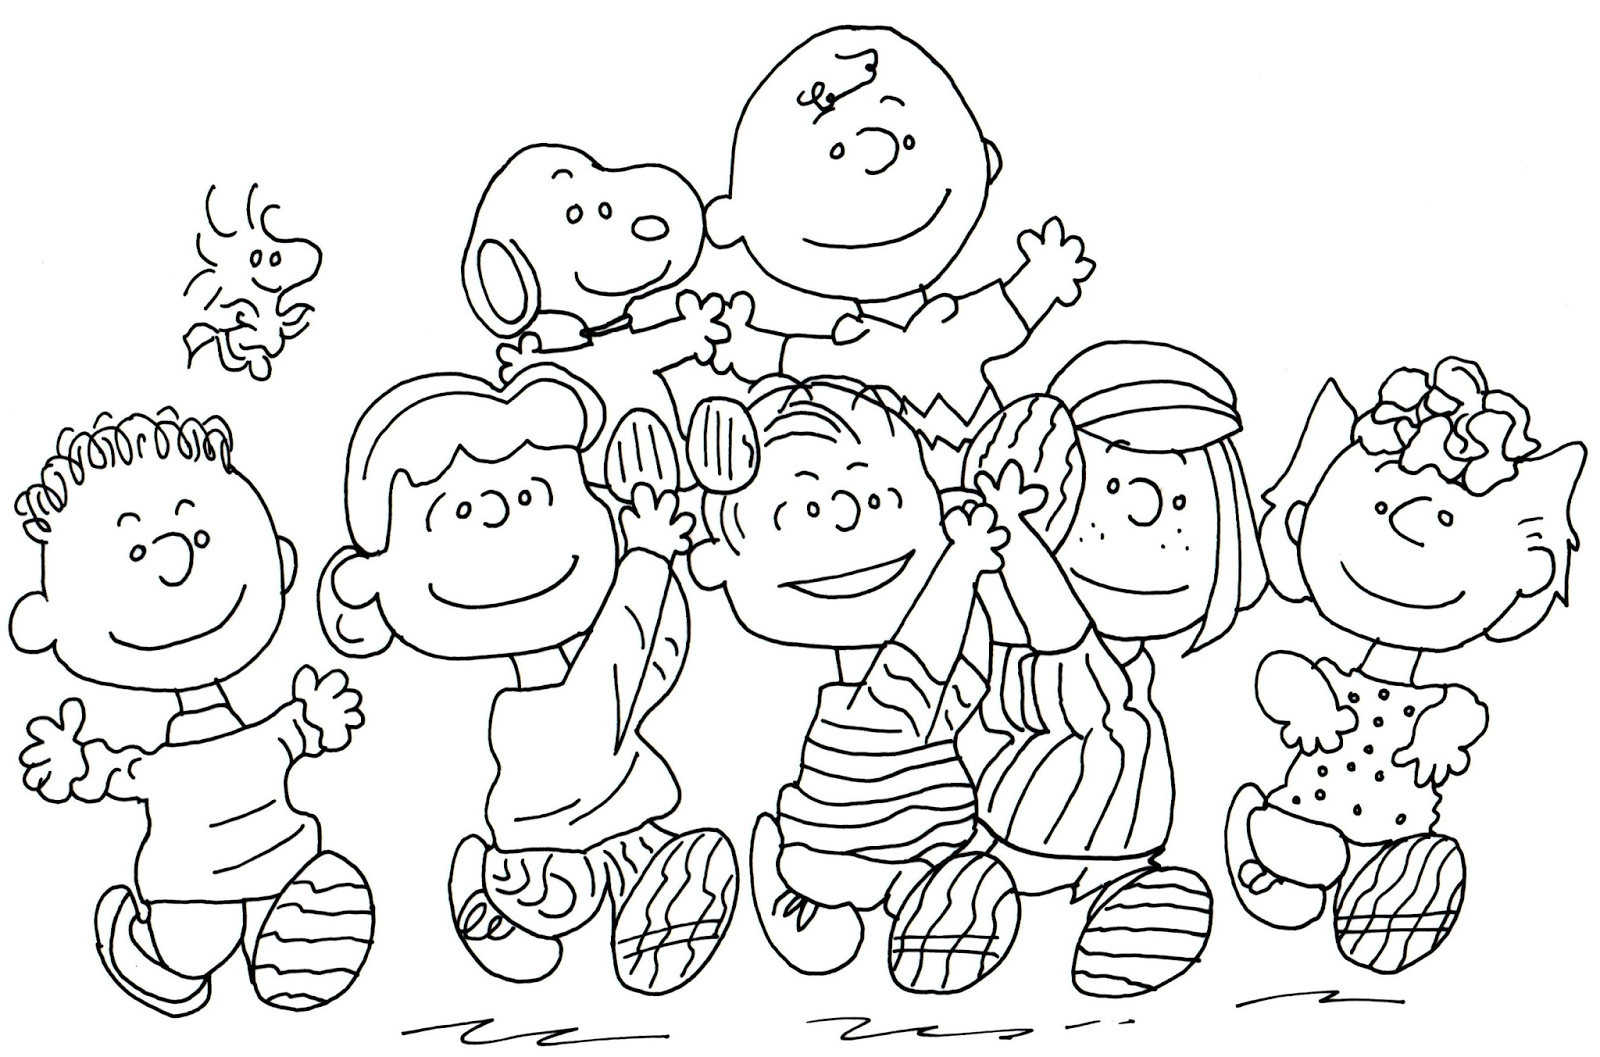 Woodstock Snoopy Coloring Pages Coloring Home Peanuts Coloring Pages